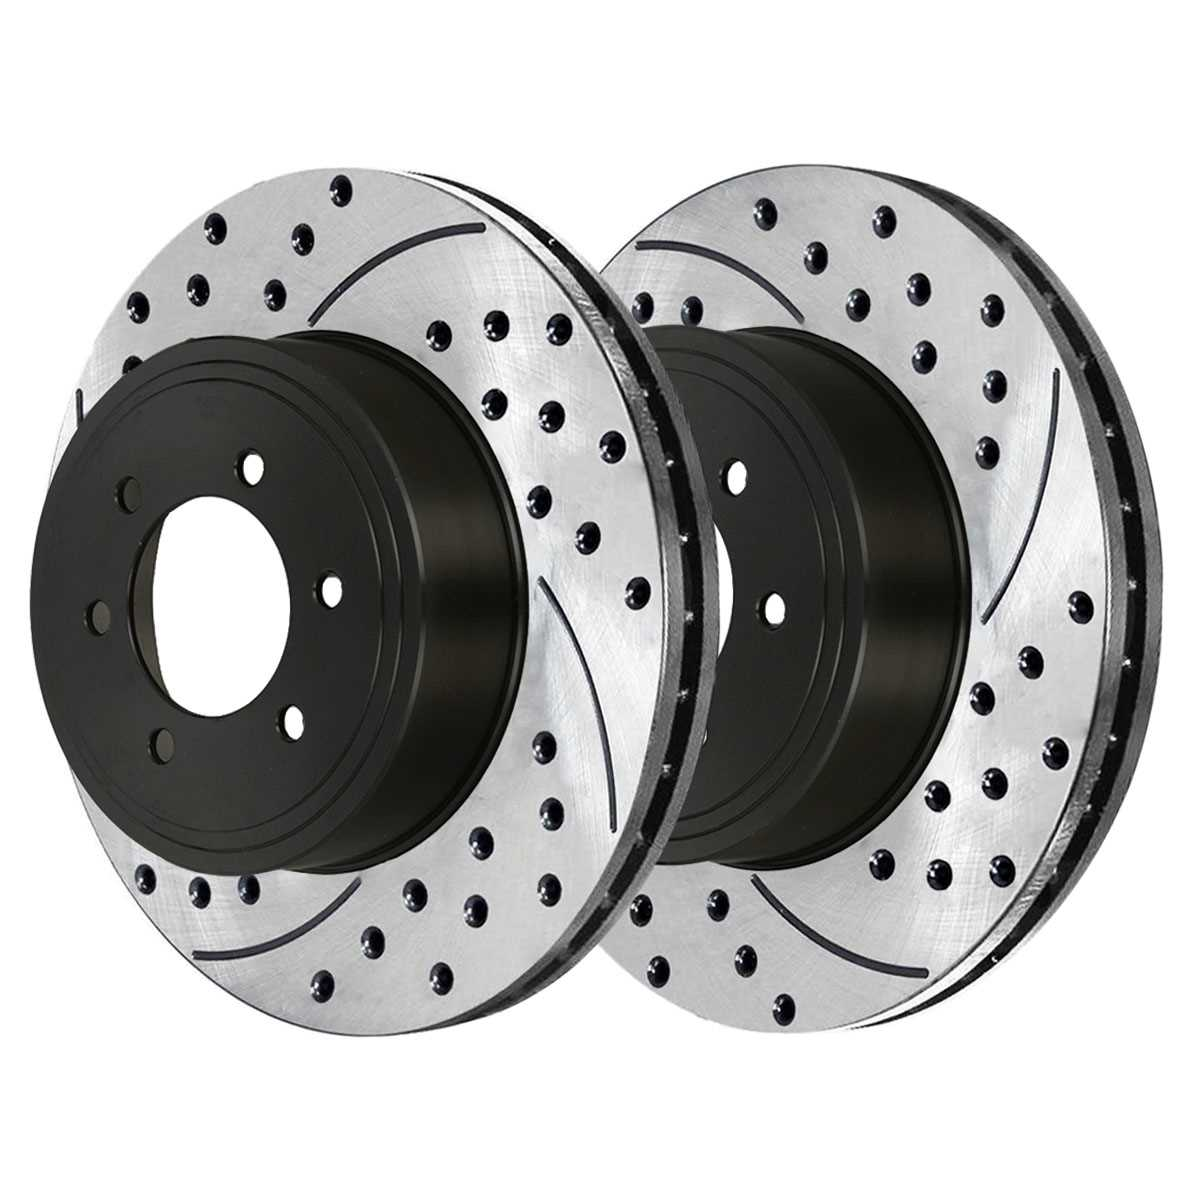 AutoShack SMKPR61206120945 Pair of 2 Front Driver and Passenger Side Drilled and Slotted Disc Brake Kit Rotors and Metallic Pads Replacement for 1999 2000 2001 2002 2003 2004 Jeep Grand Cherokee